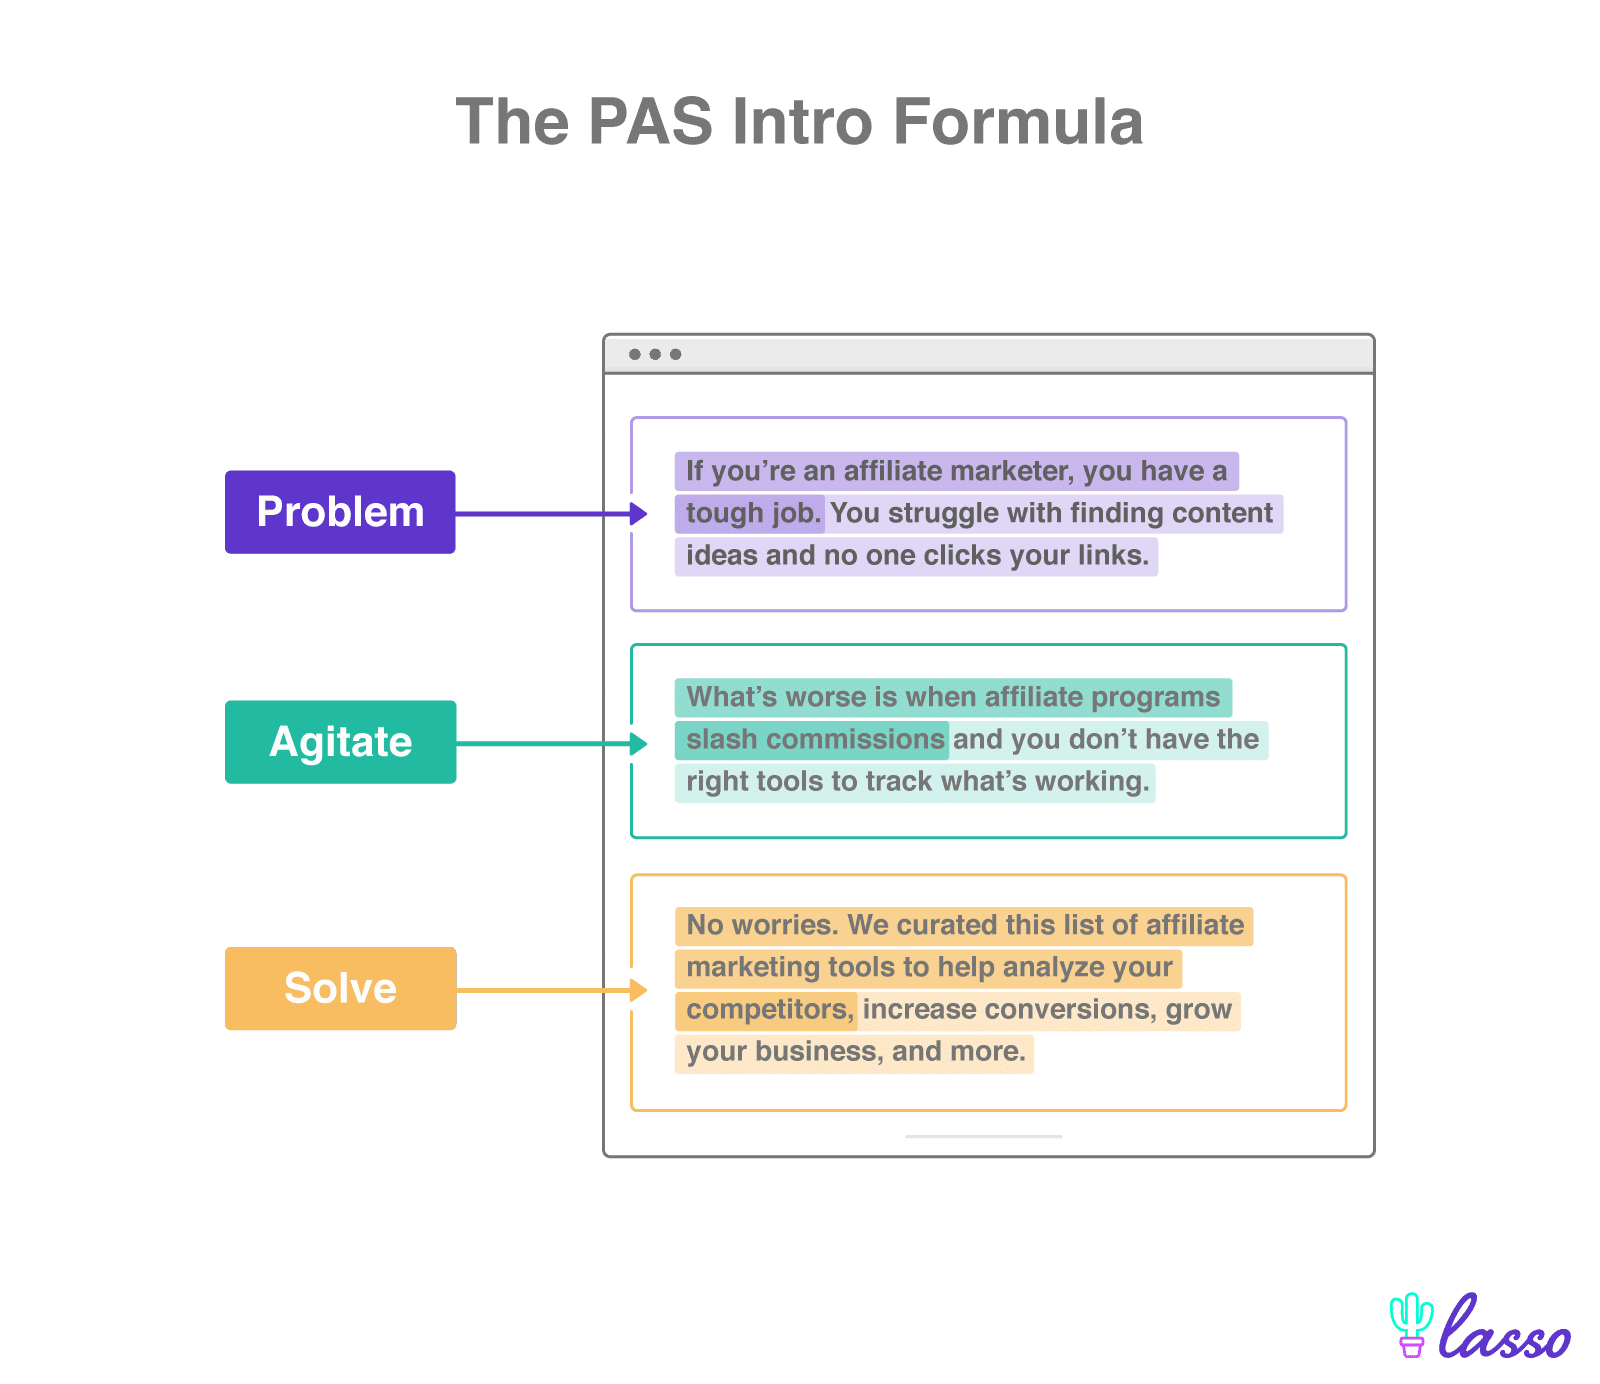 problem agitate solve intro formula with each section a different color